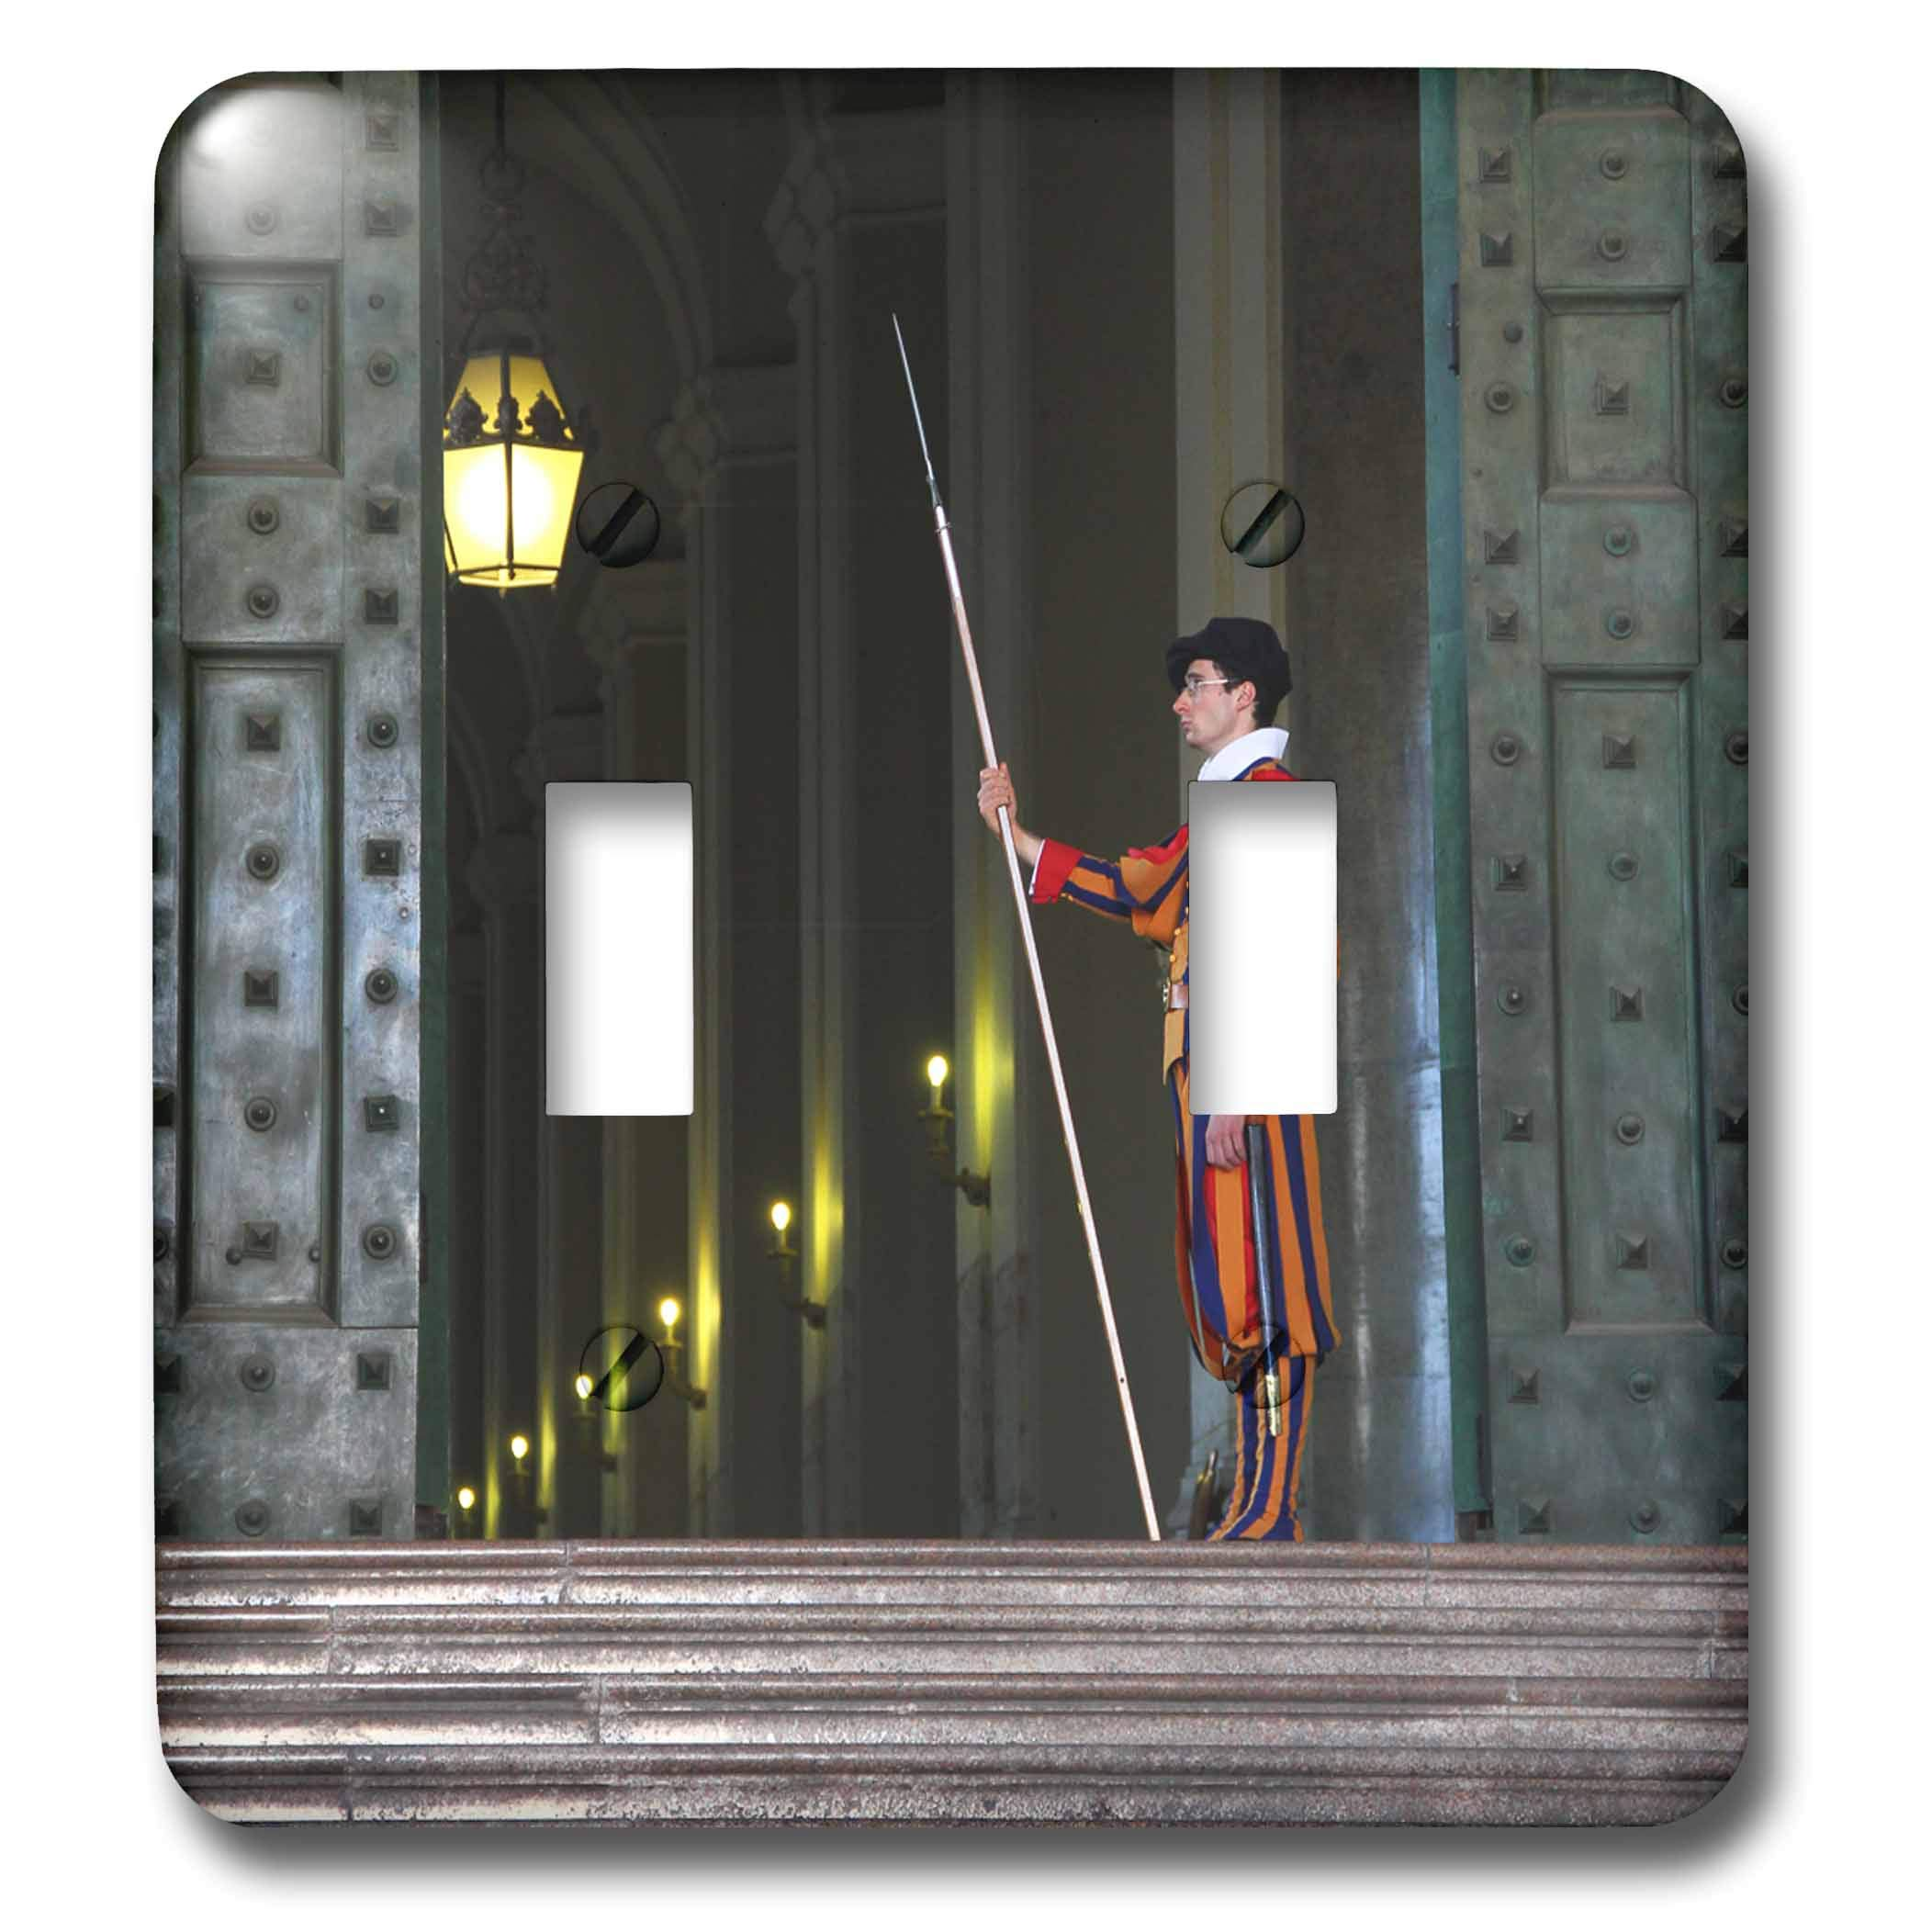 3dRose Elysium Photography - Portrait - Swiss guard on duty, Vatican City - Light Switch Covers - double toggle switch (lsp_289614_2)